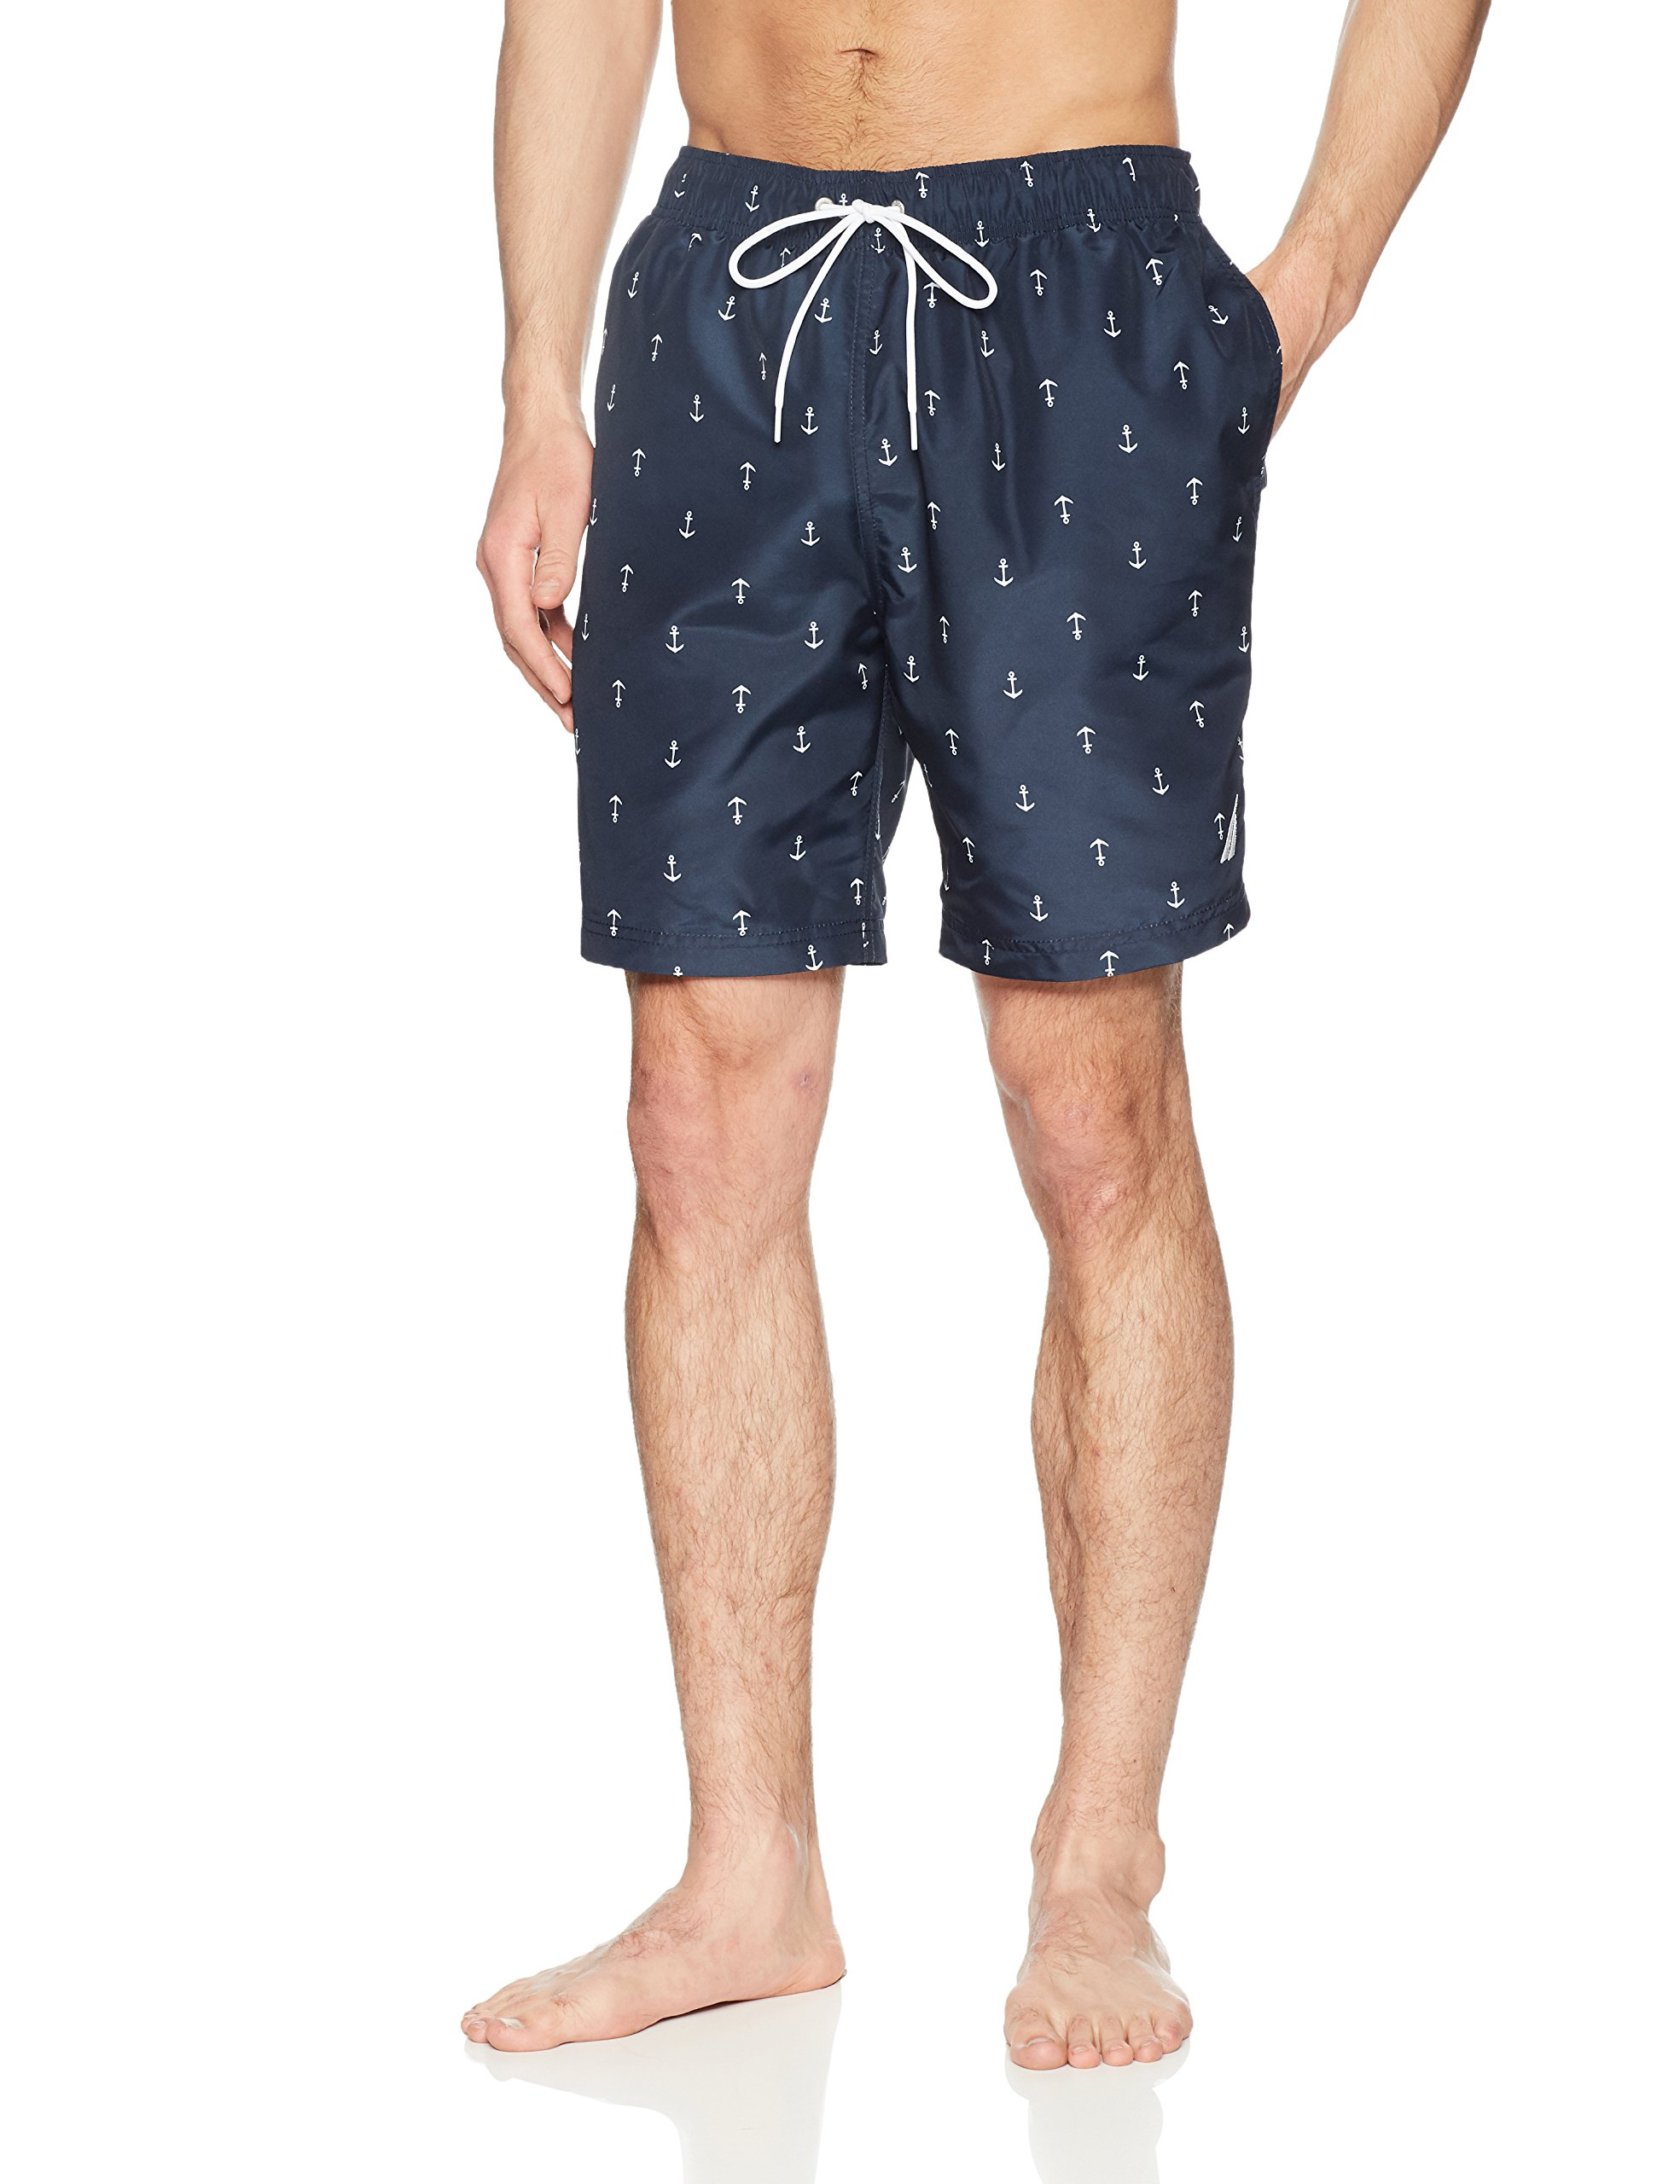 Nautica Men's Quick Dry All Over Classic Anchor Print Swim Trunk, Navy, XX-Large by Nautica